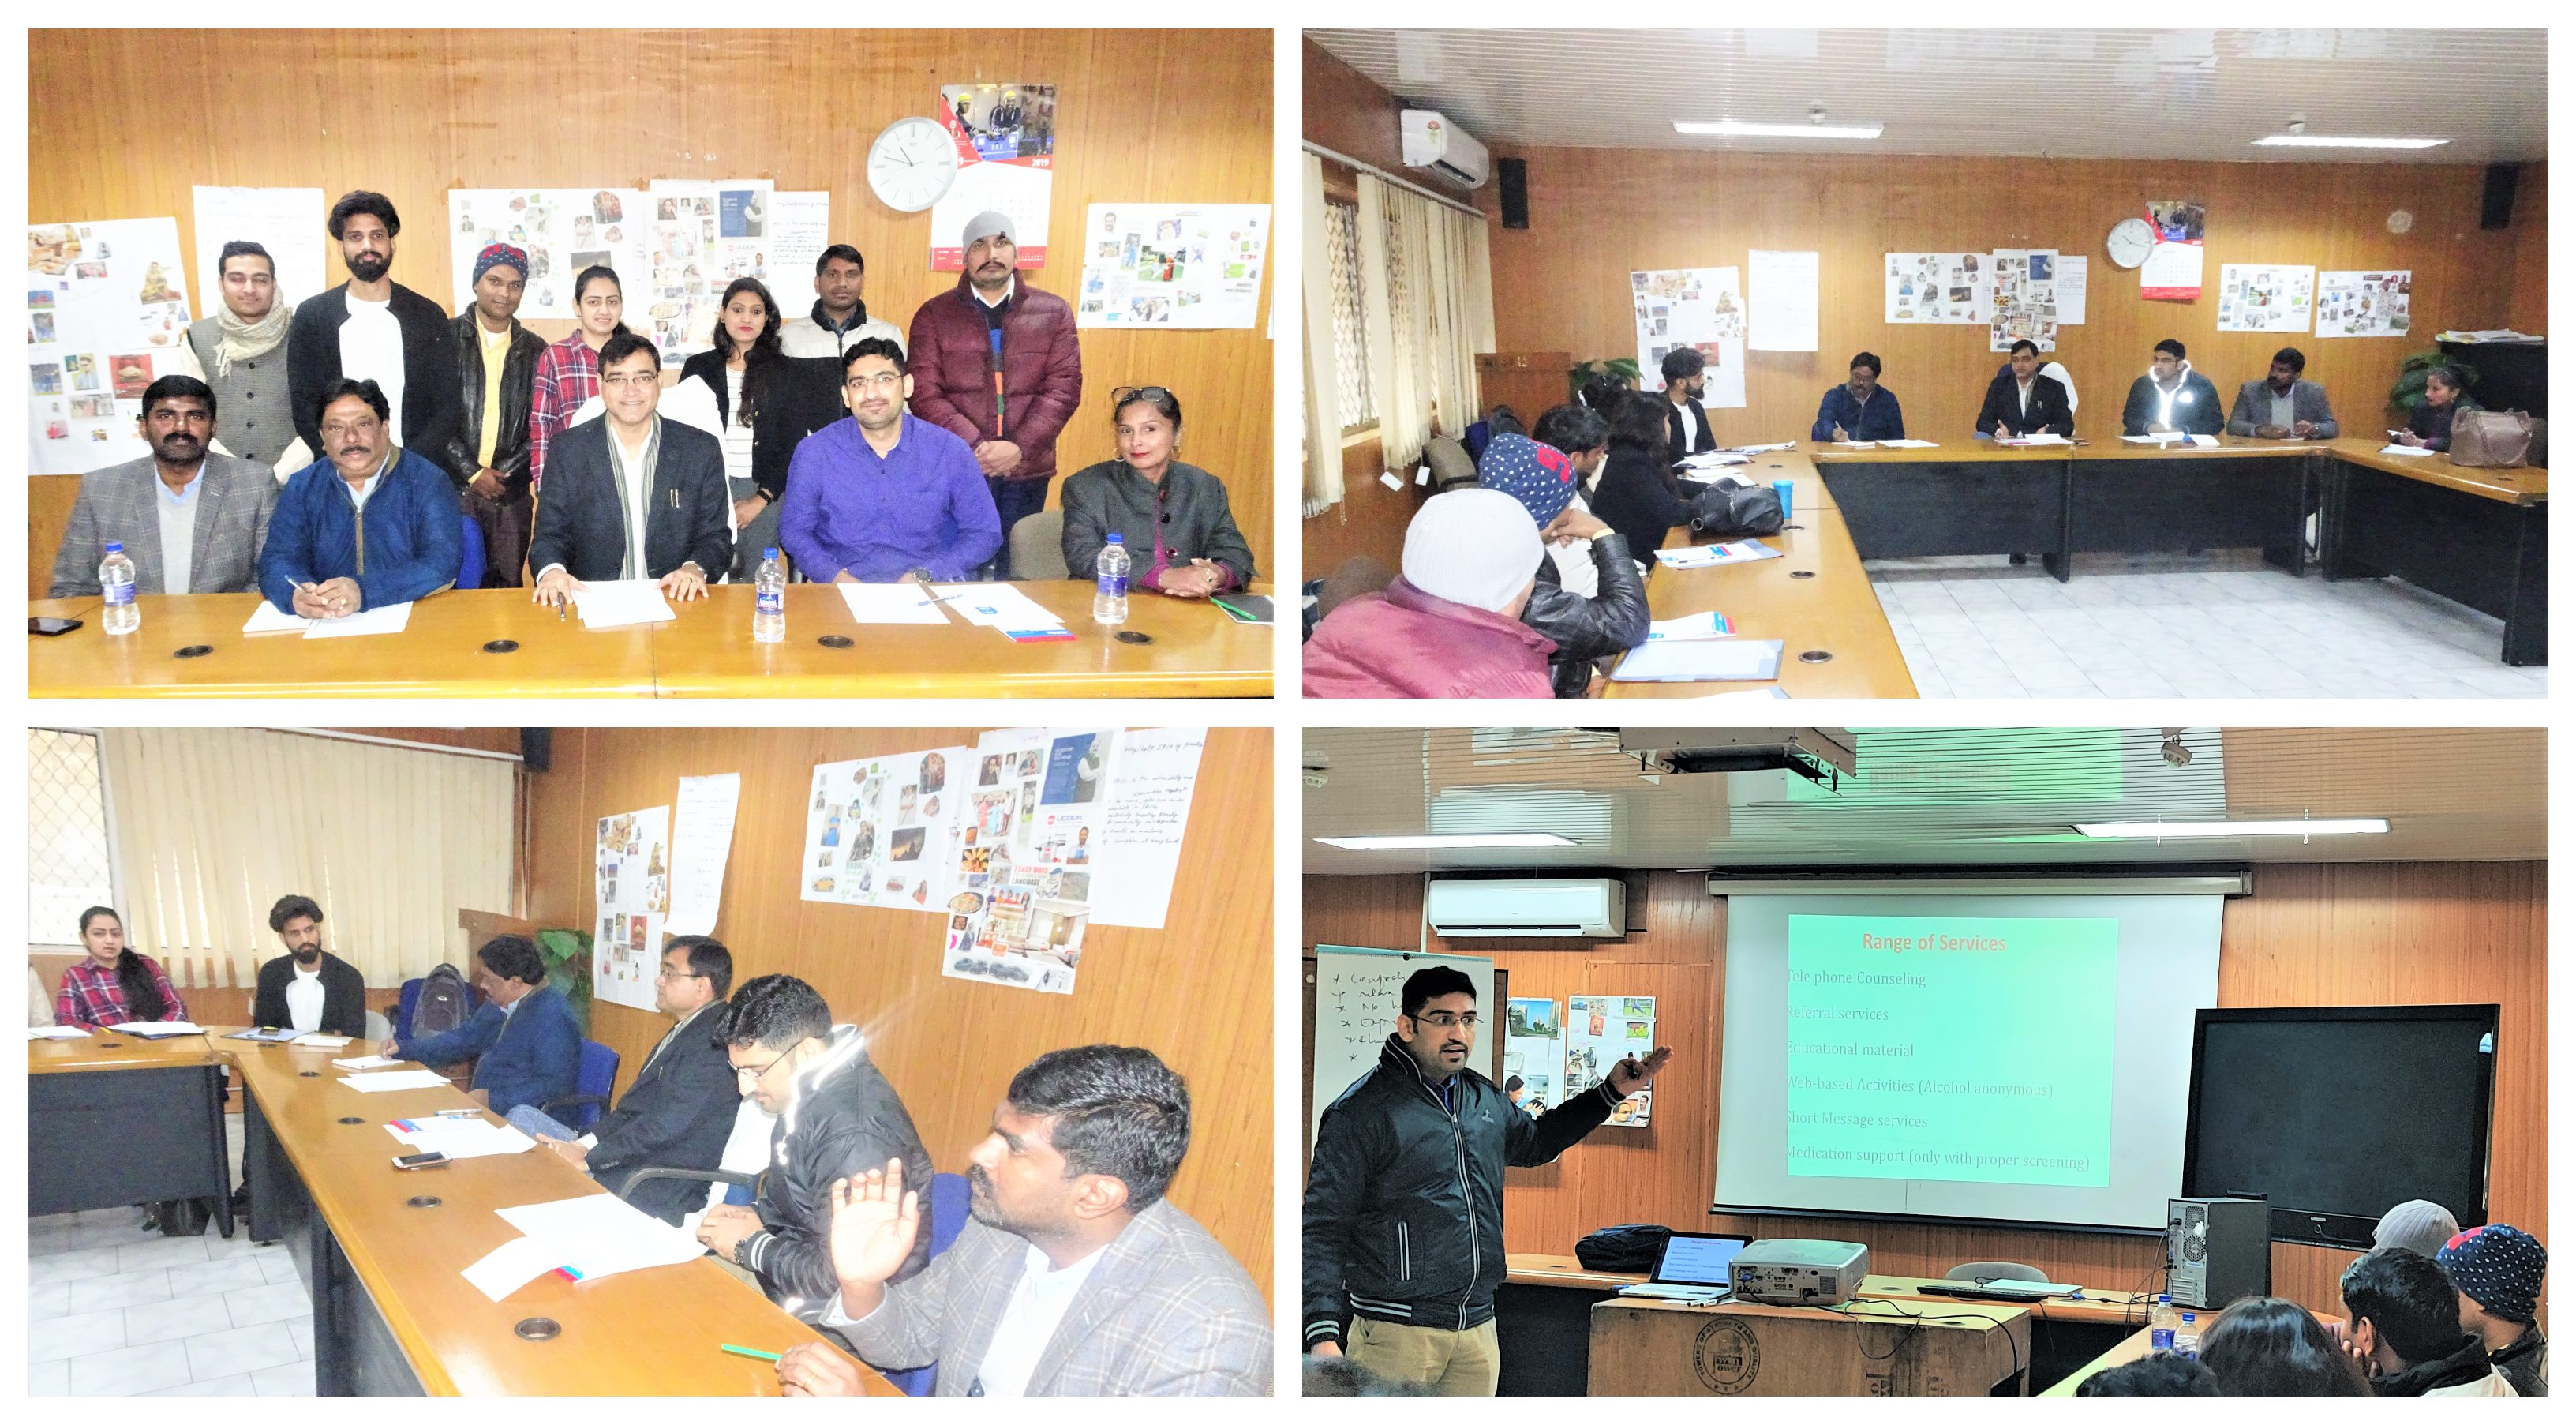 NISD conducts training of tele-counsellors from the National Drug De-Addiction Helpline in Delhi on